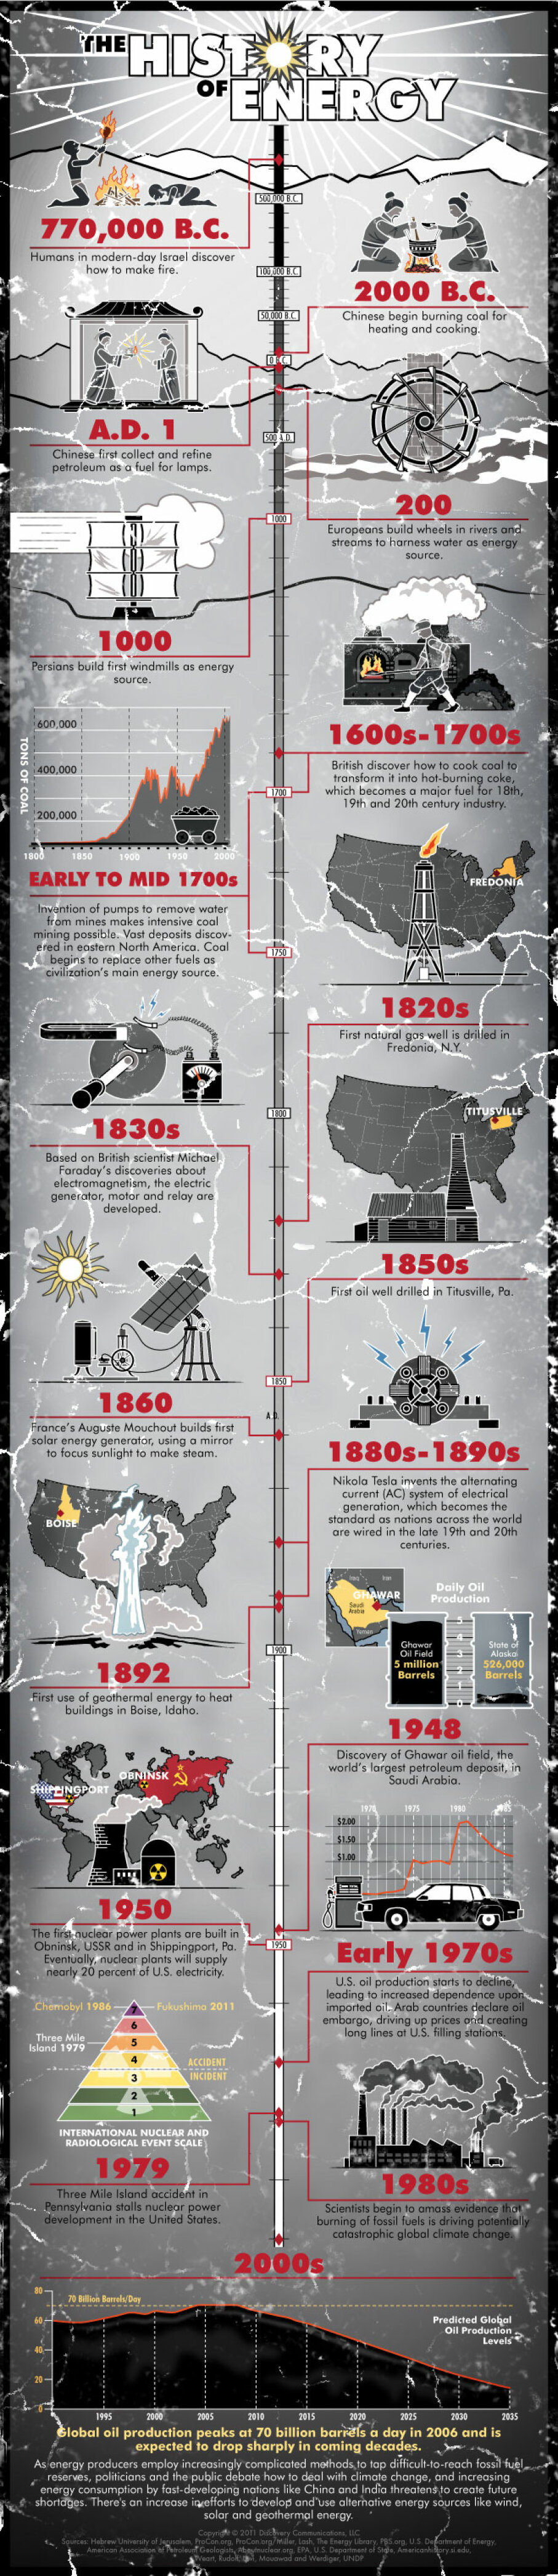 An Illustrated History of Energy